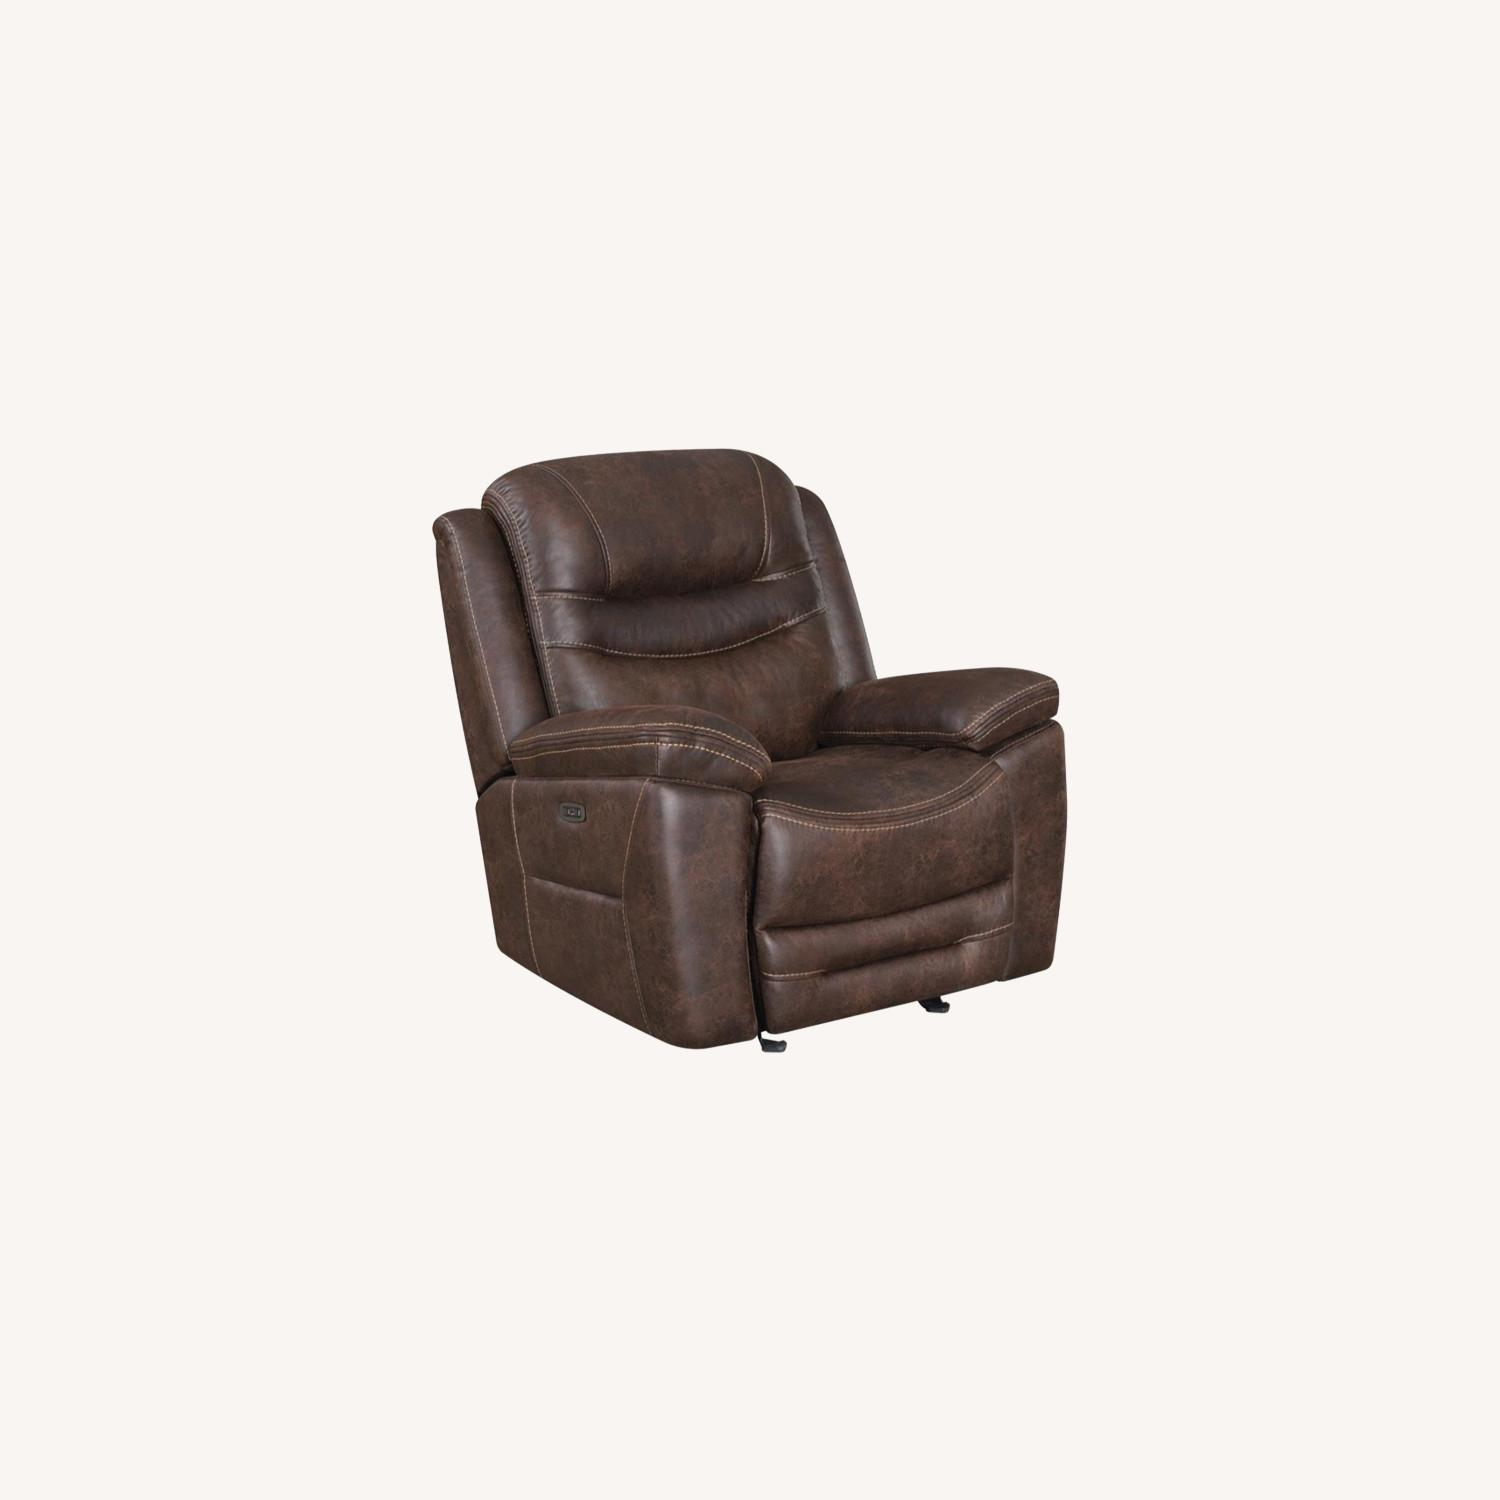 Power Glider Recliner In Chocolate Faux Upholstery - image-10